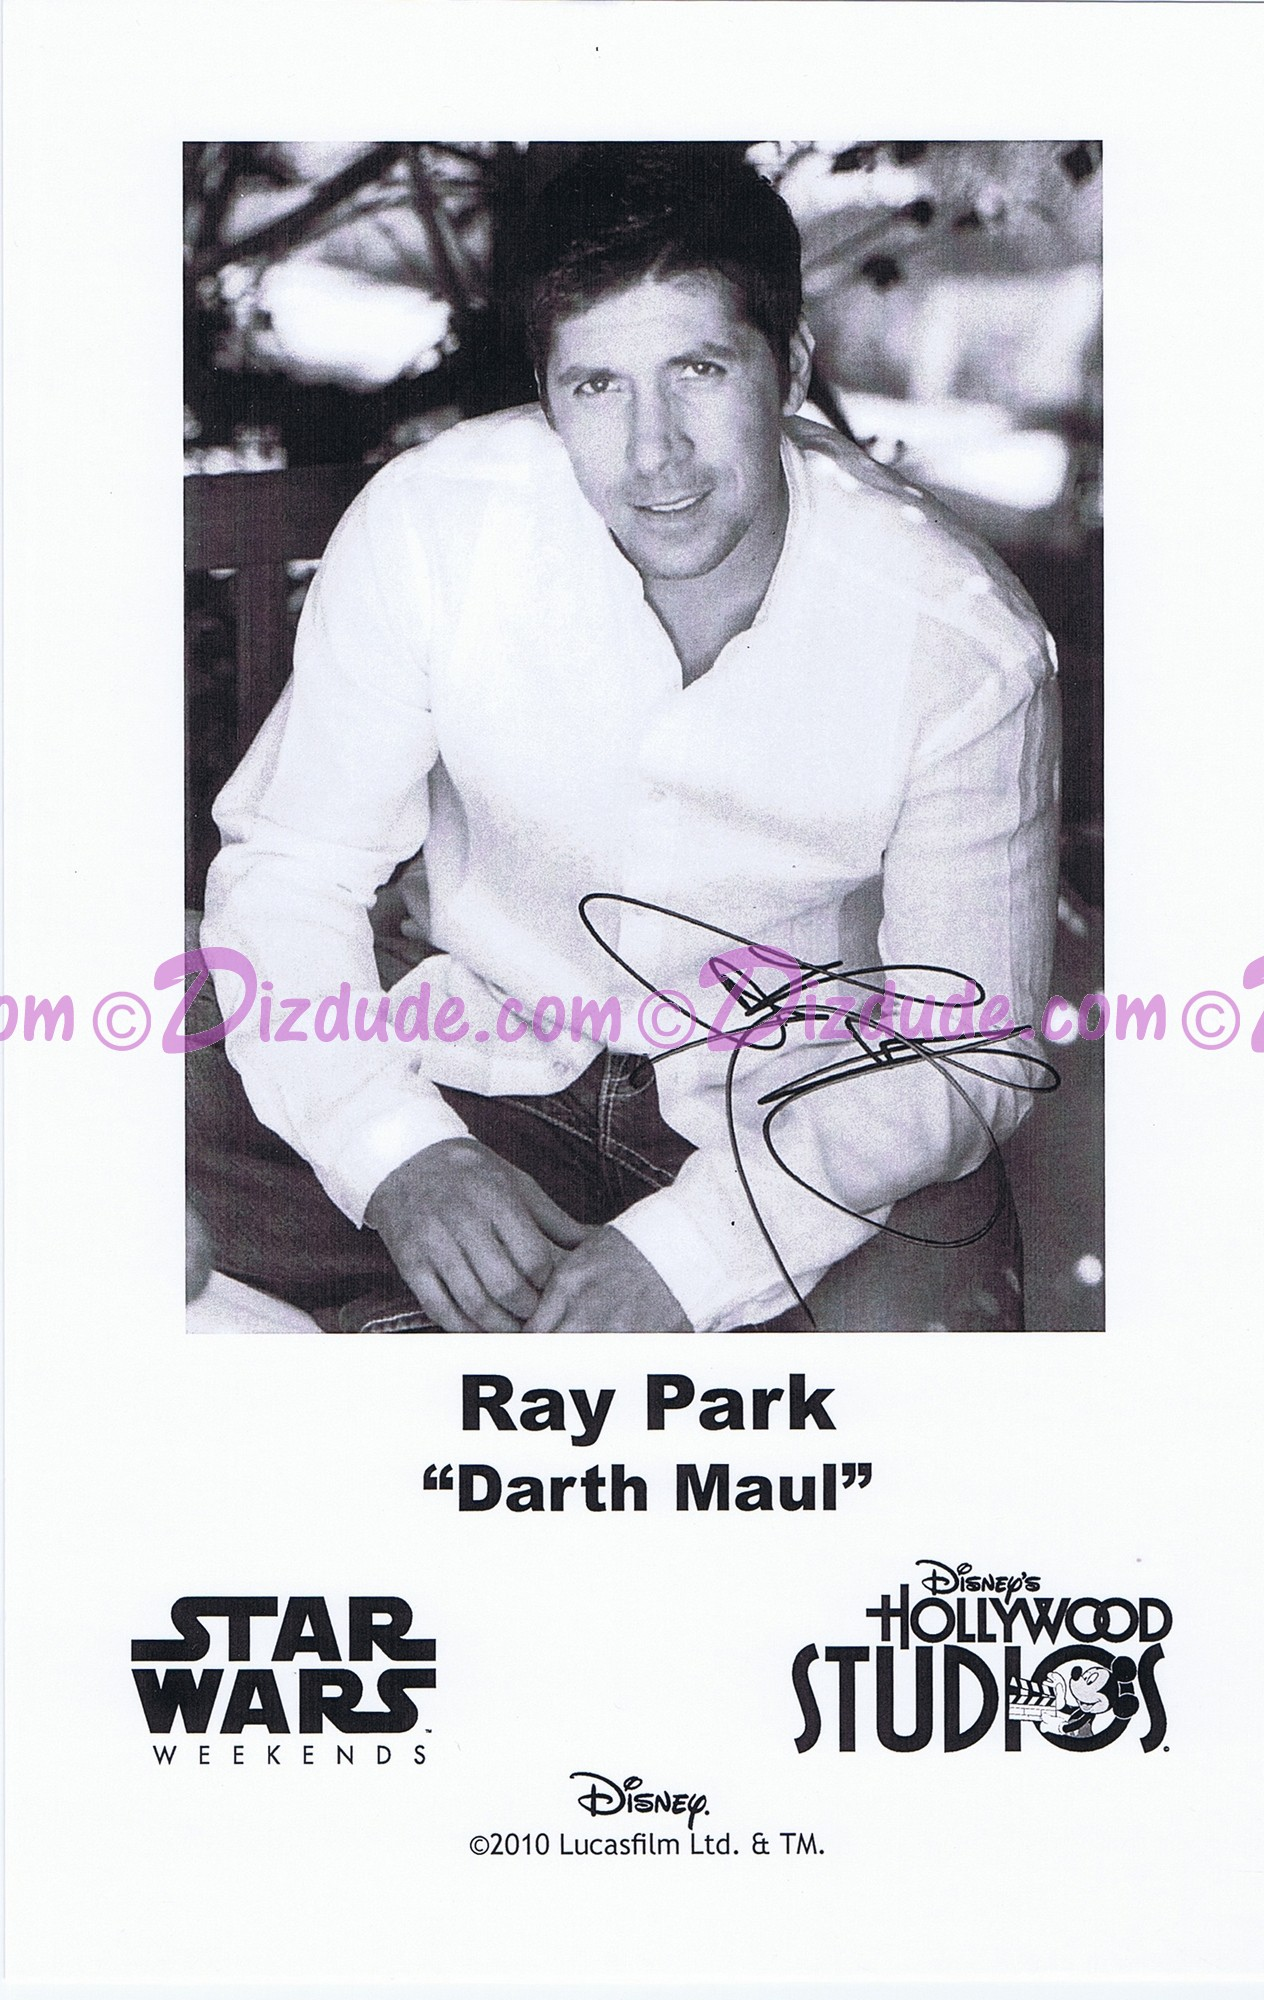 Ray Park who played Darth Maul Presigned Official Star Wars Weekends 2010 Celebrity Collector Photo © Dizdude.com